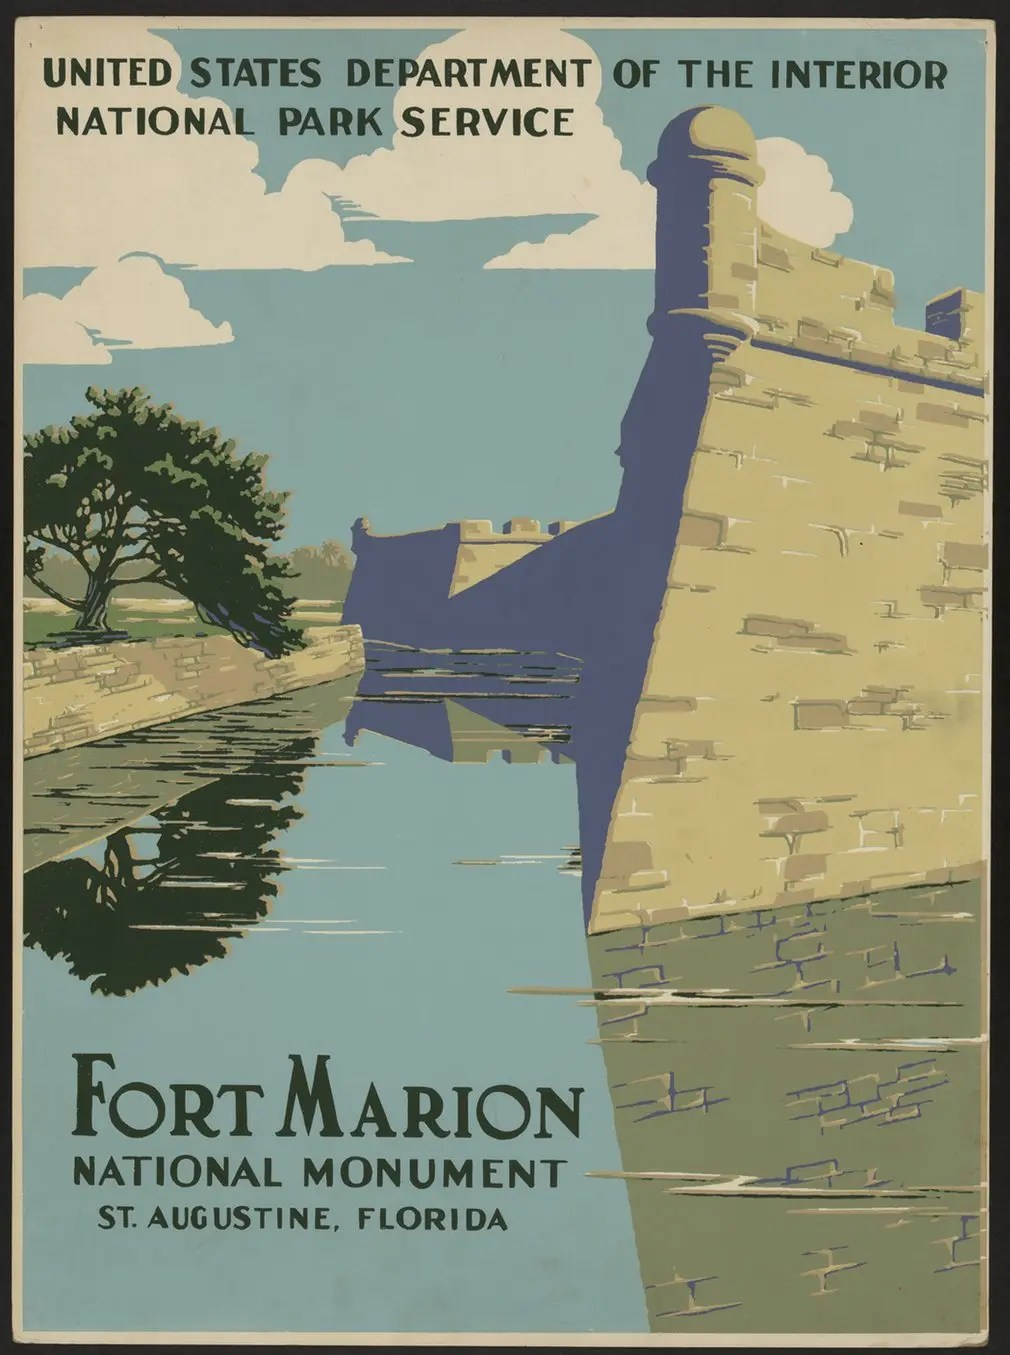 Fort Marion in Florida, 1938.